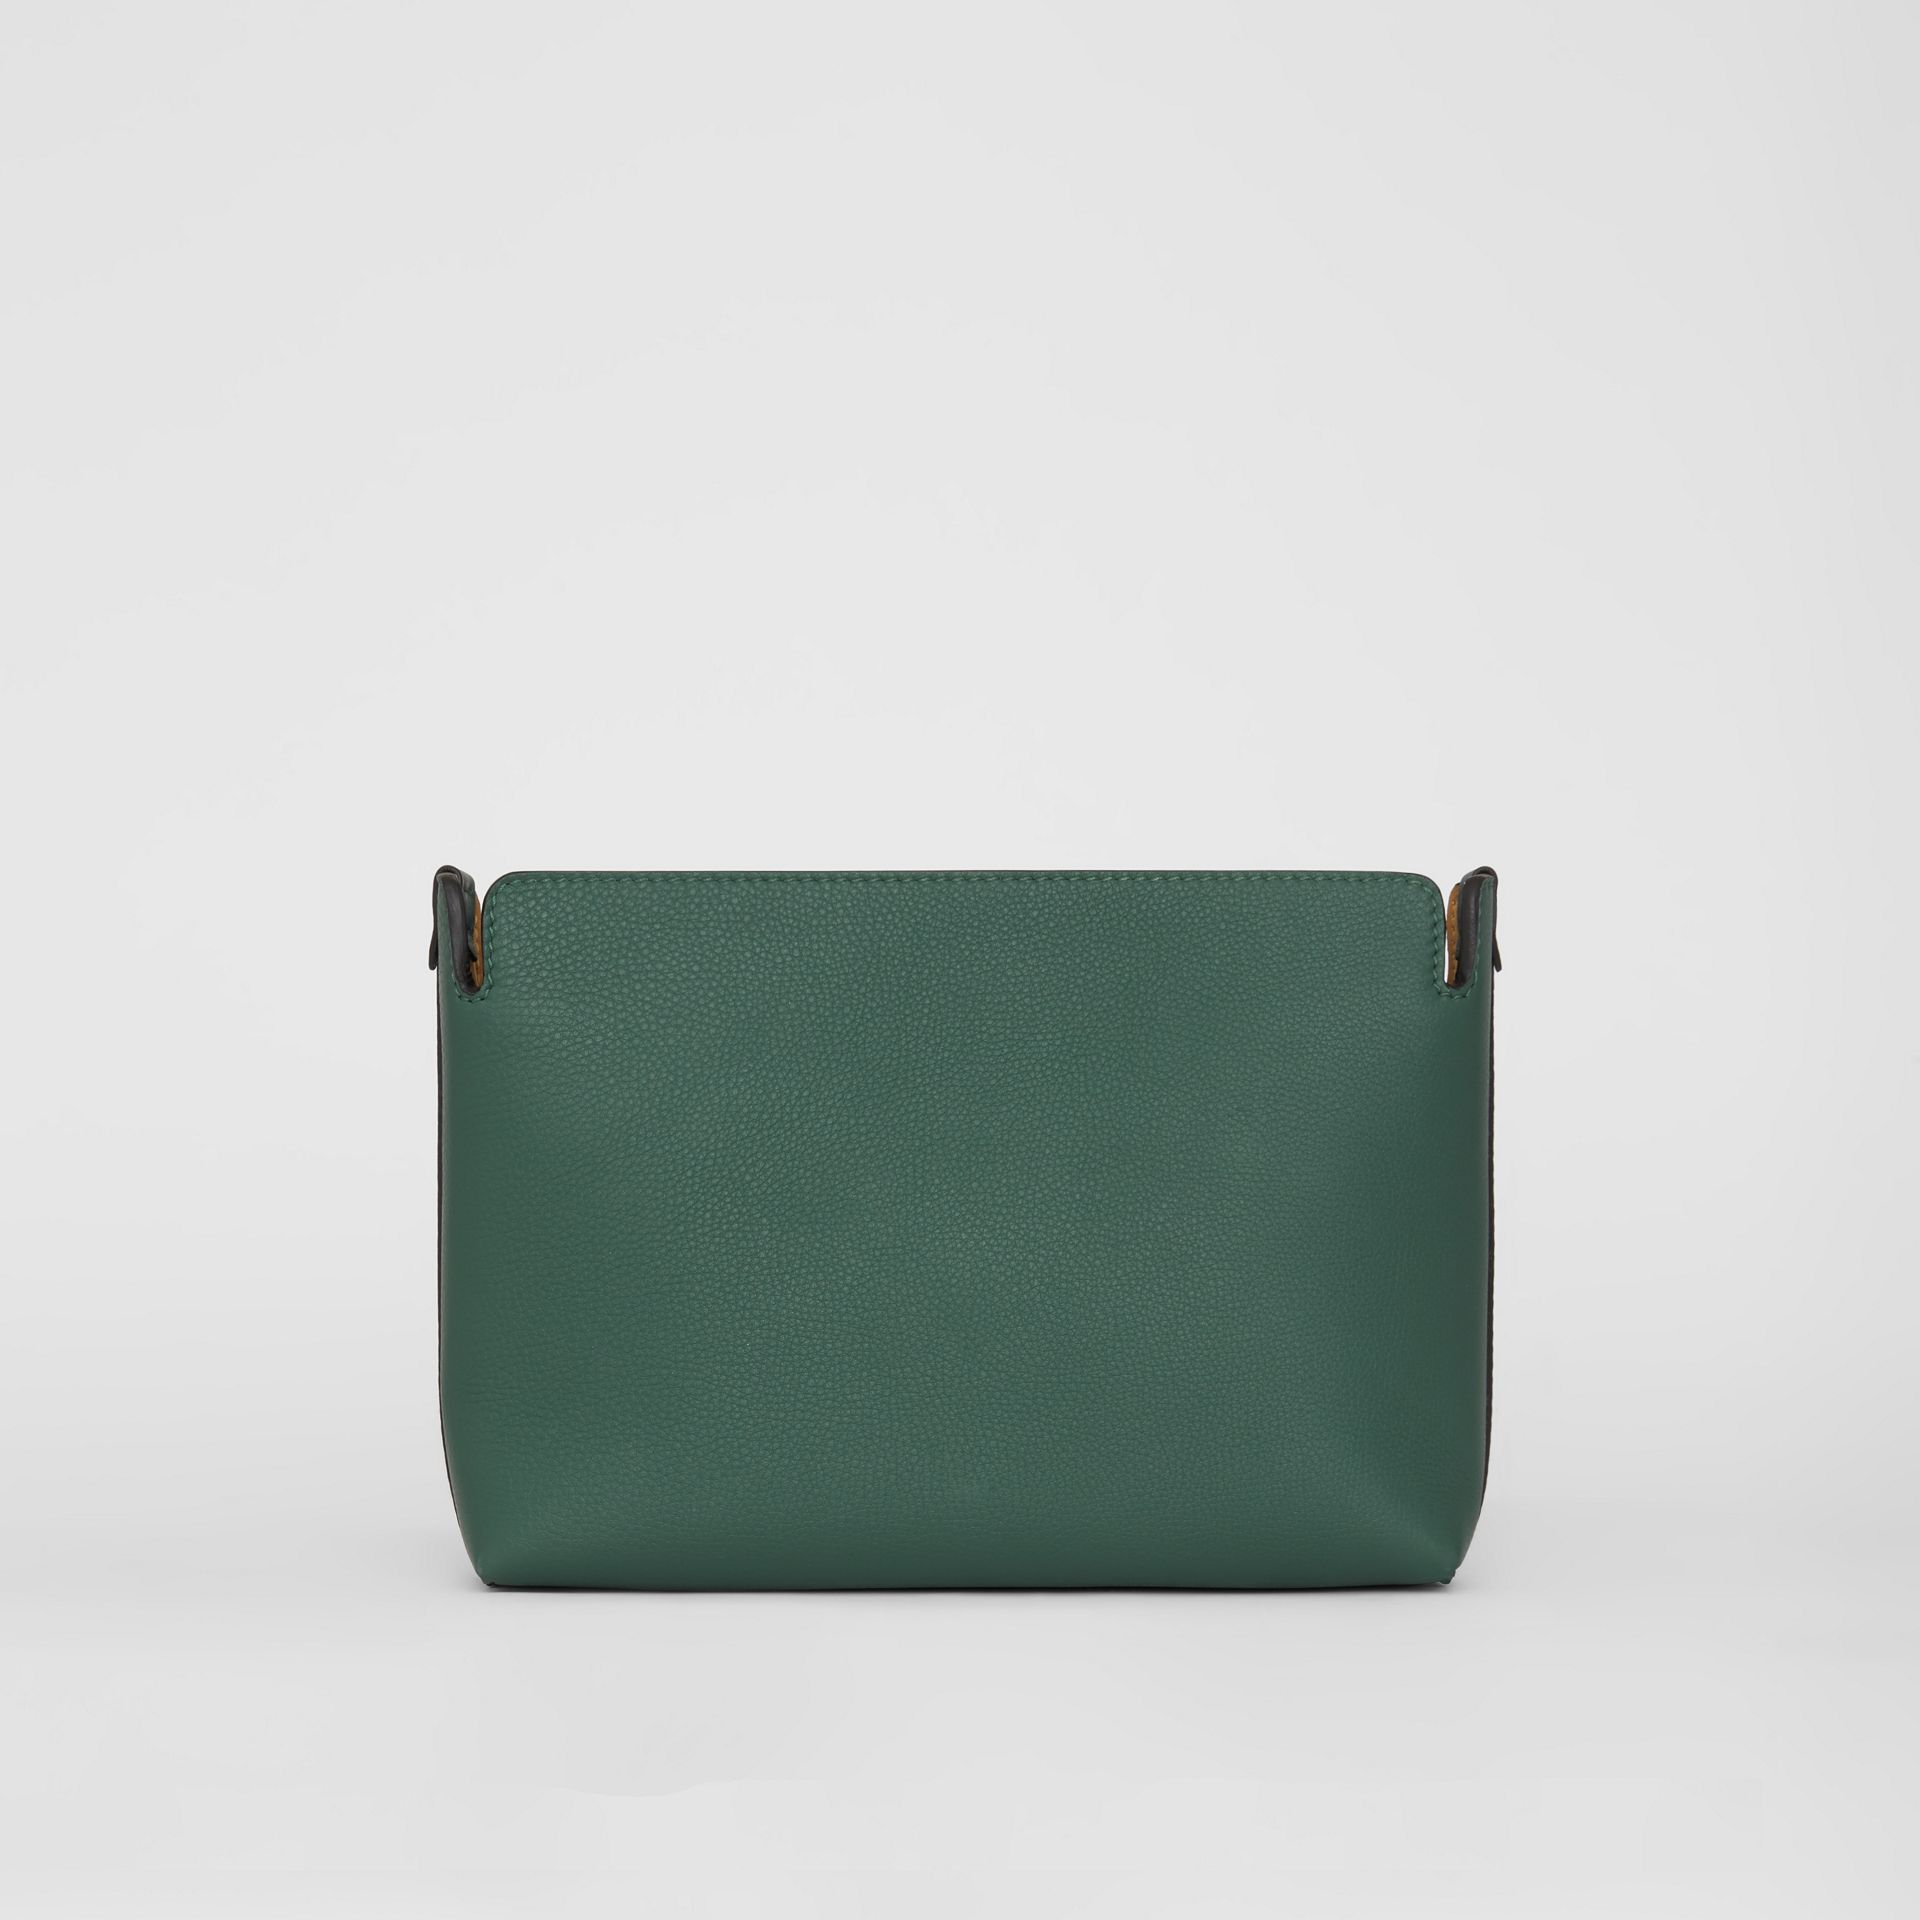 Medium Tri-tone Leather Clutch in Black/sea Green - Women | Burberry Singapore - gallery image 7